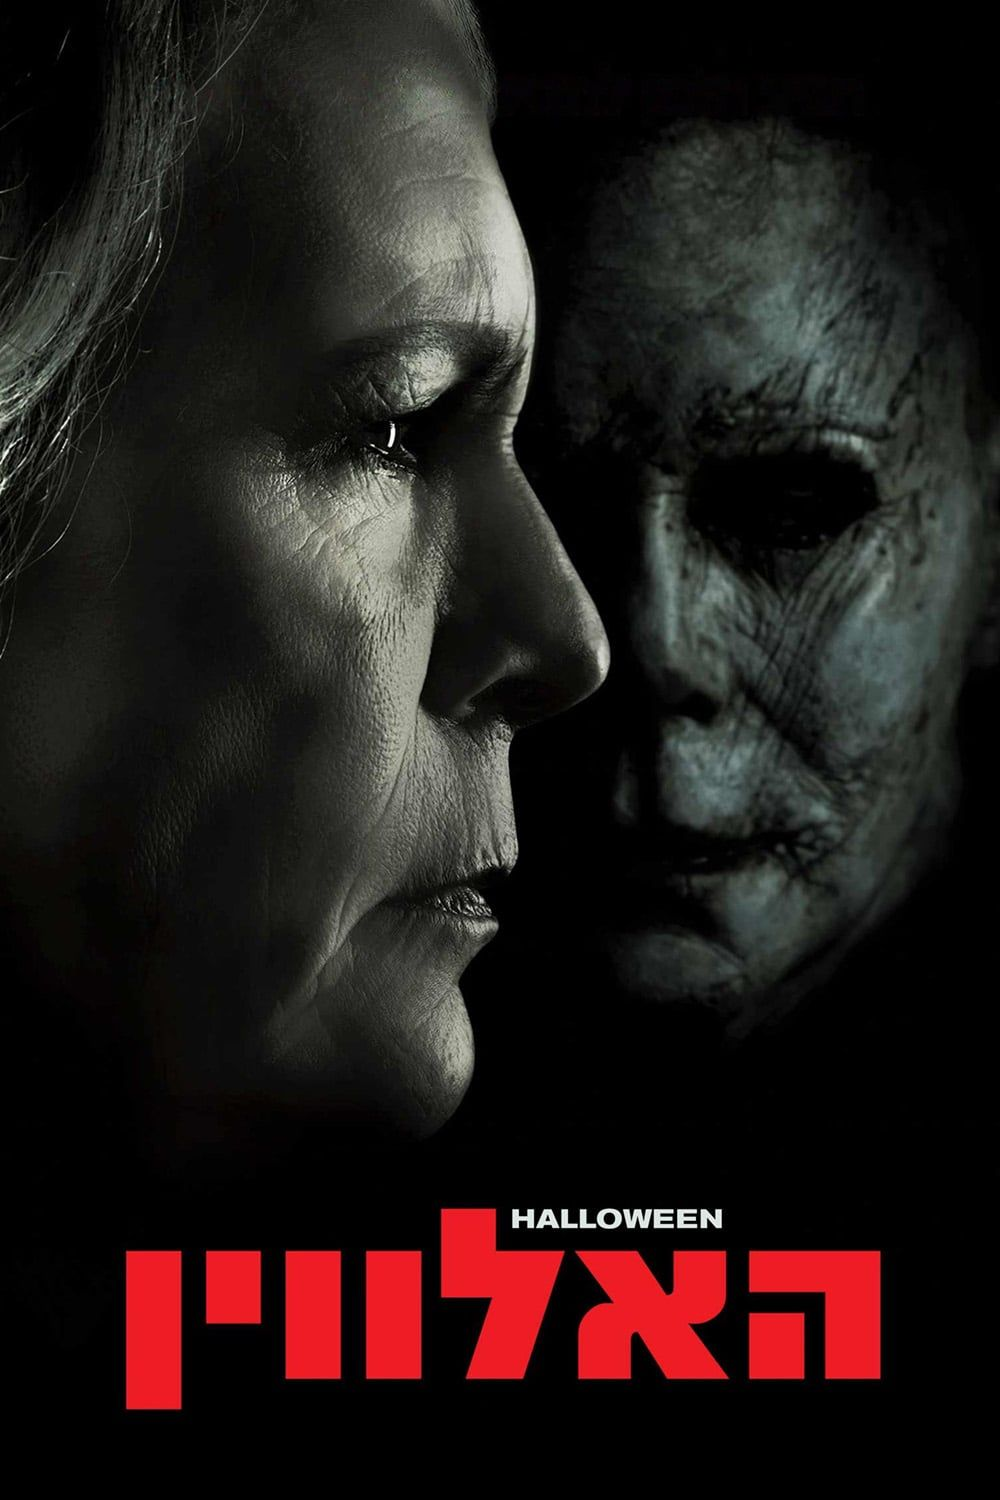 Halloween (2018) where to Téléchargement free complets